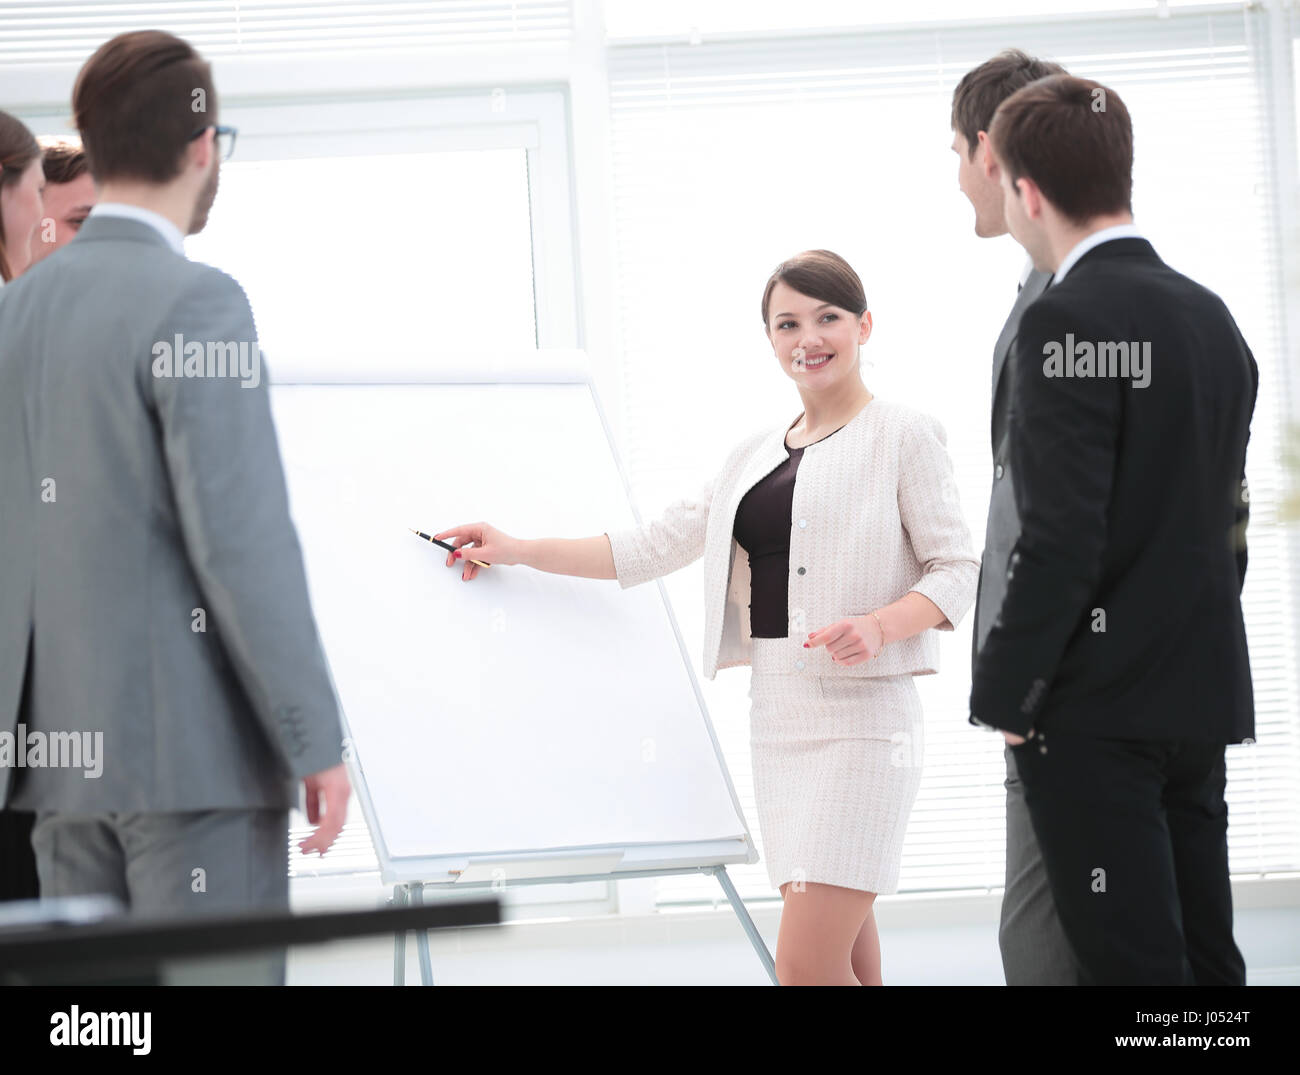 Colleagues asking a question to a businesswoman during a present Stock Photo